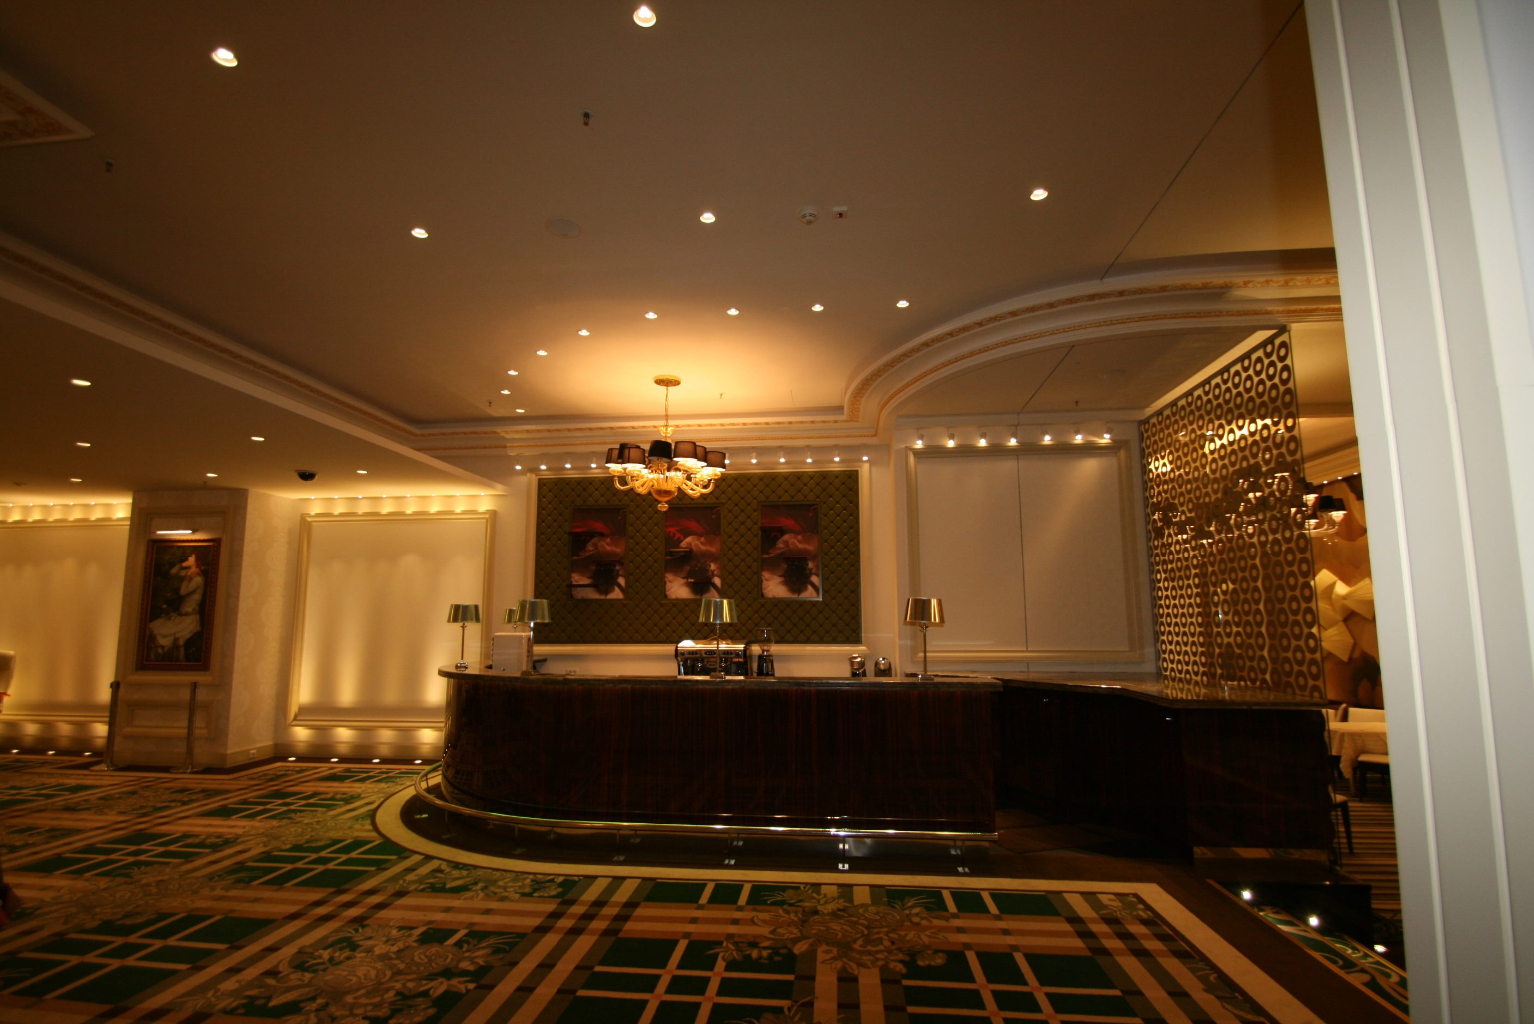 Grand Casino Marriott Bucuresti Bucharest placari pereti rame receptii usi bar bufet180